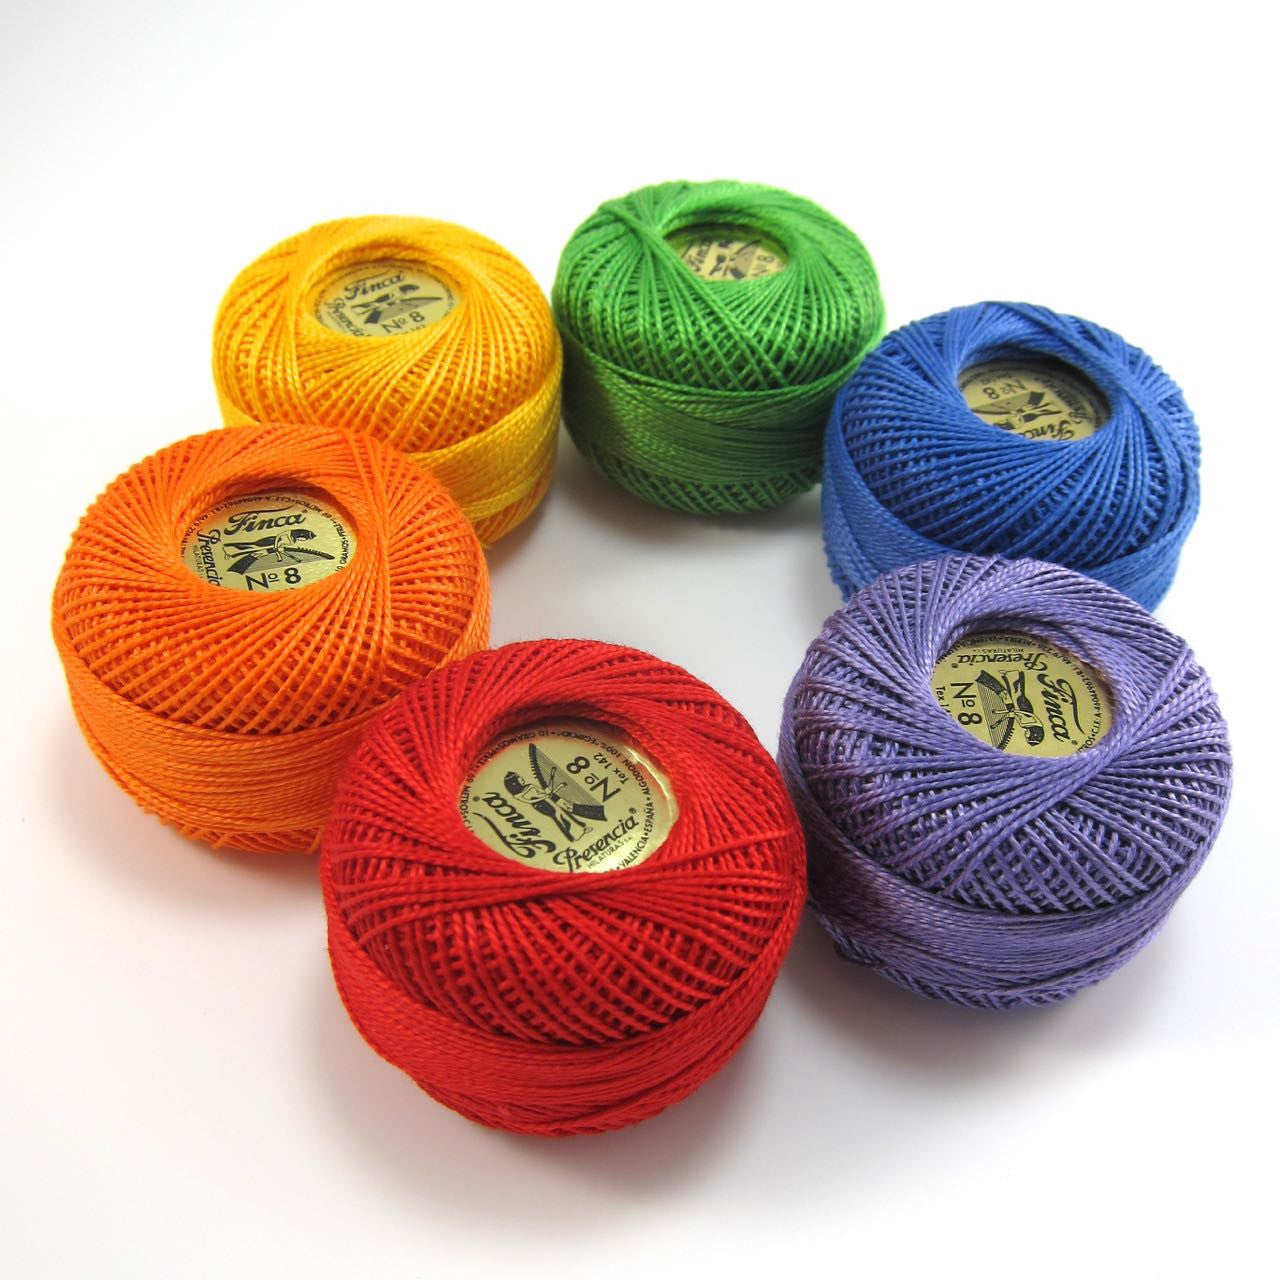 Rainbow Pearl Cotton Thread Set (Size 8) Perle Cotton - Snuggly Monkey